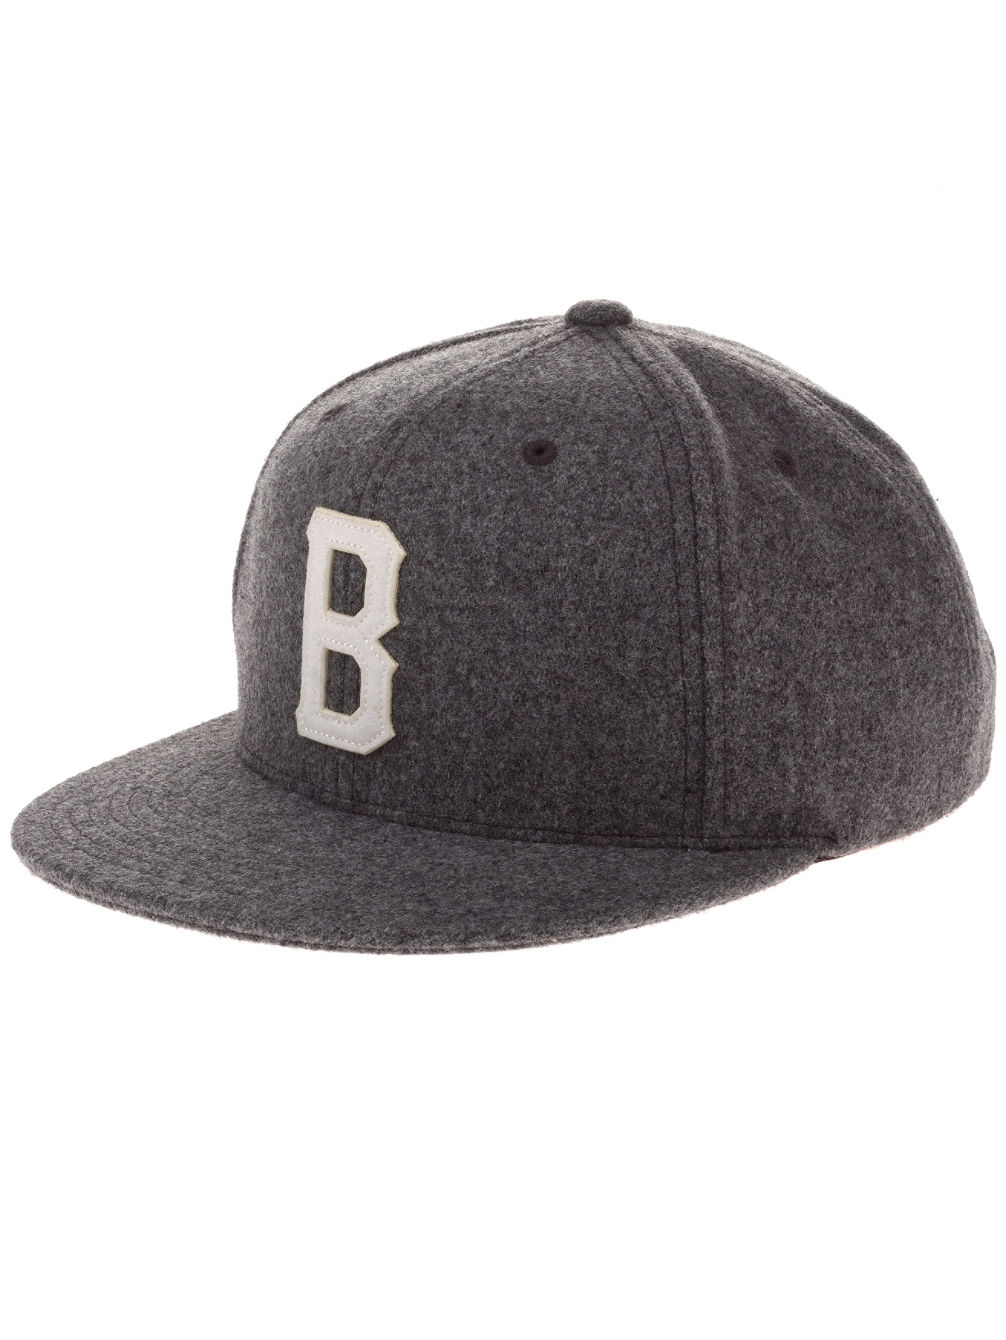 burton-durable-goods-cap